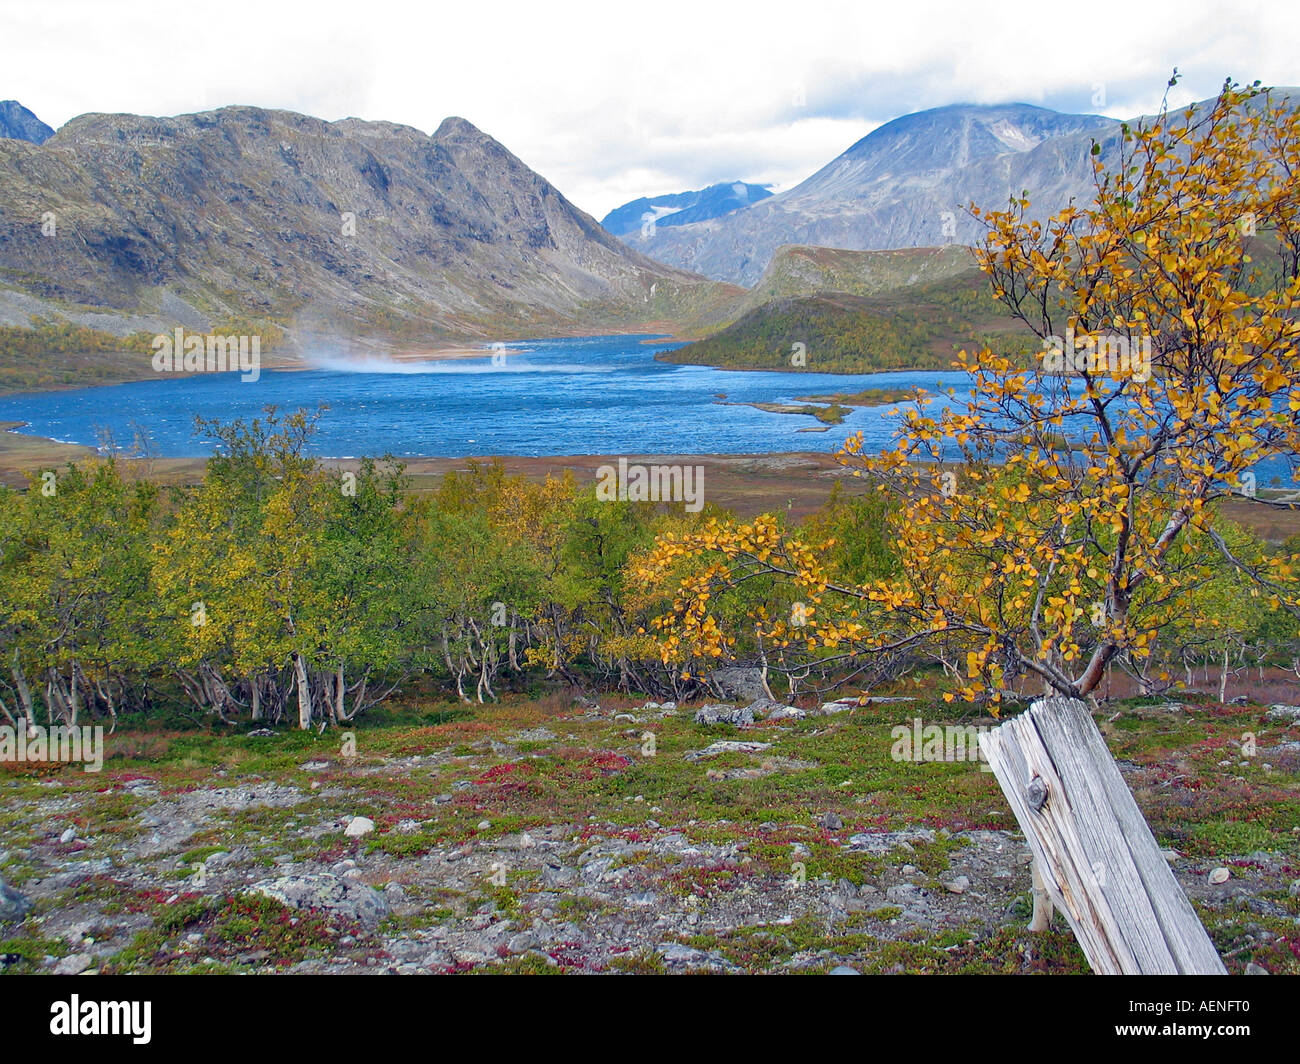 Wind playing over a lake in Jotunheimen during the turning of the seasons / Indian summer, Jotunheimen, Norway - Stock Image